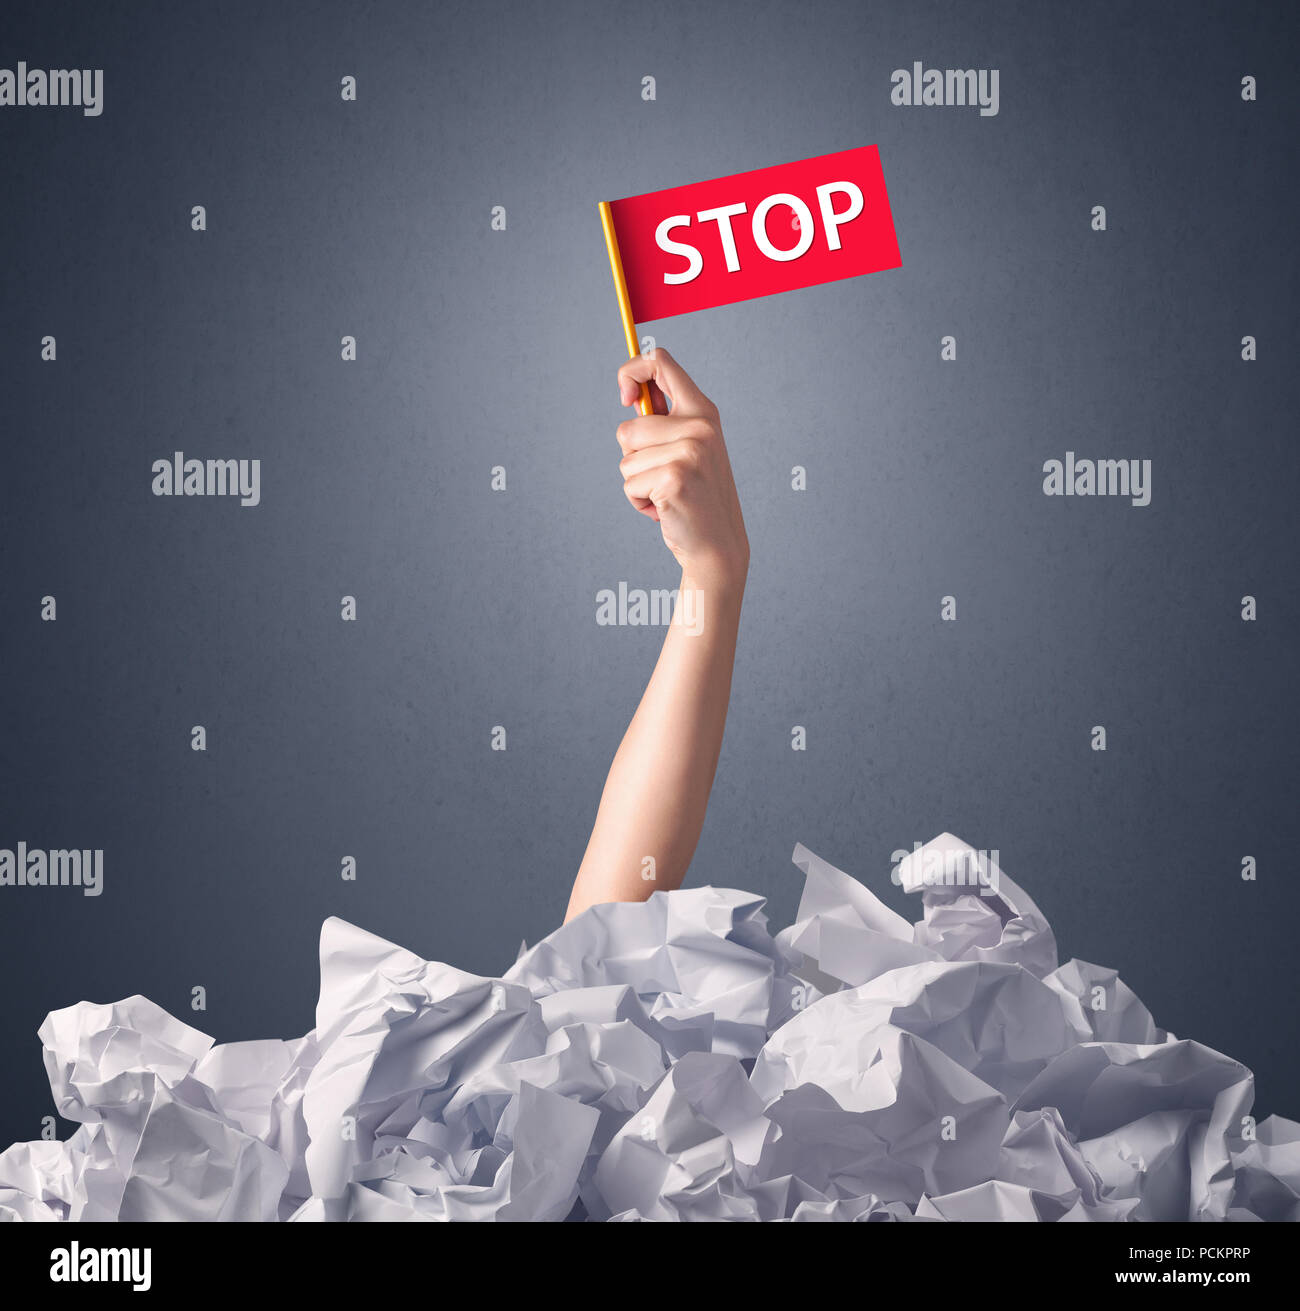 Female hand emerging from crumpled paper pile holding a red flag with stop written on it  - Stock Image